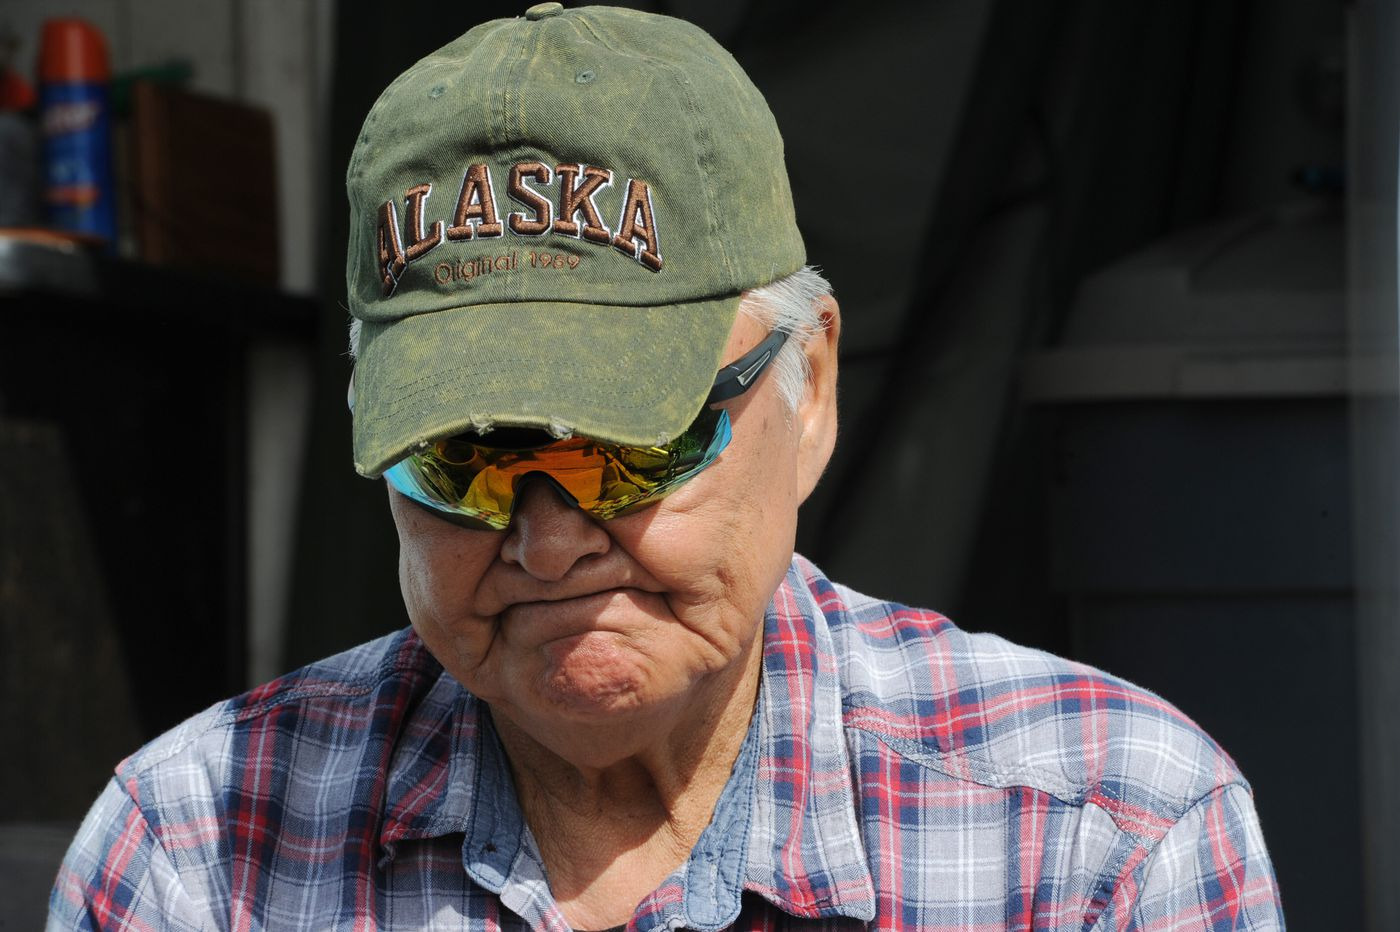 Chuck Lockwood believes he knows who is responsible for her death and wants them held accountable. Lockwood is seeking justice for his granddaughter. Photographed on Thursday, June 27, 2019. (Bill Roth / ADN)